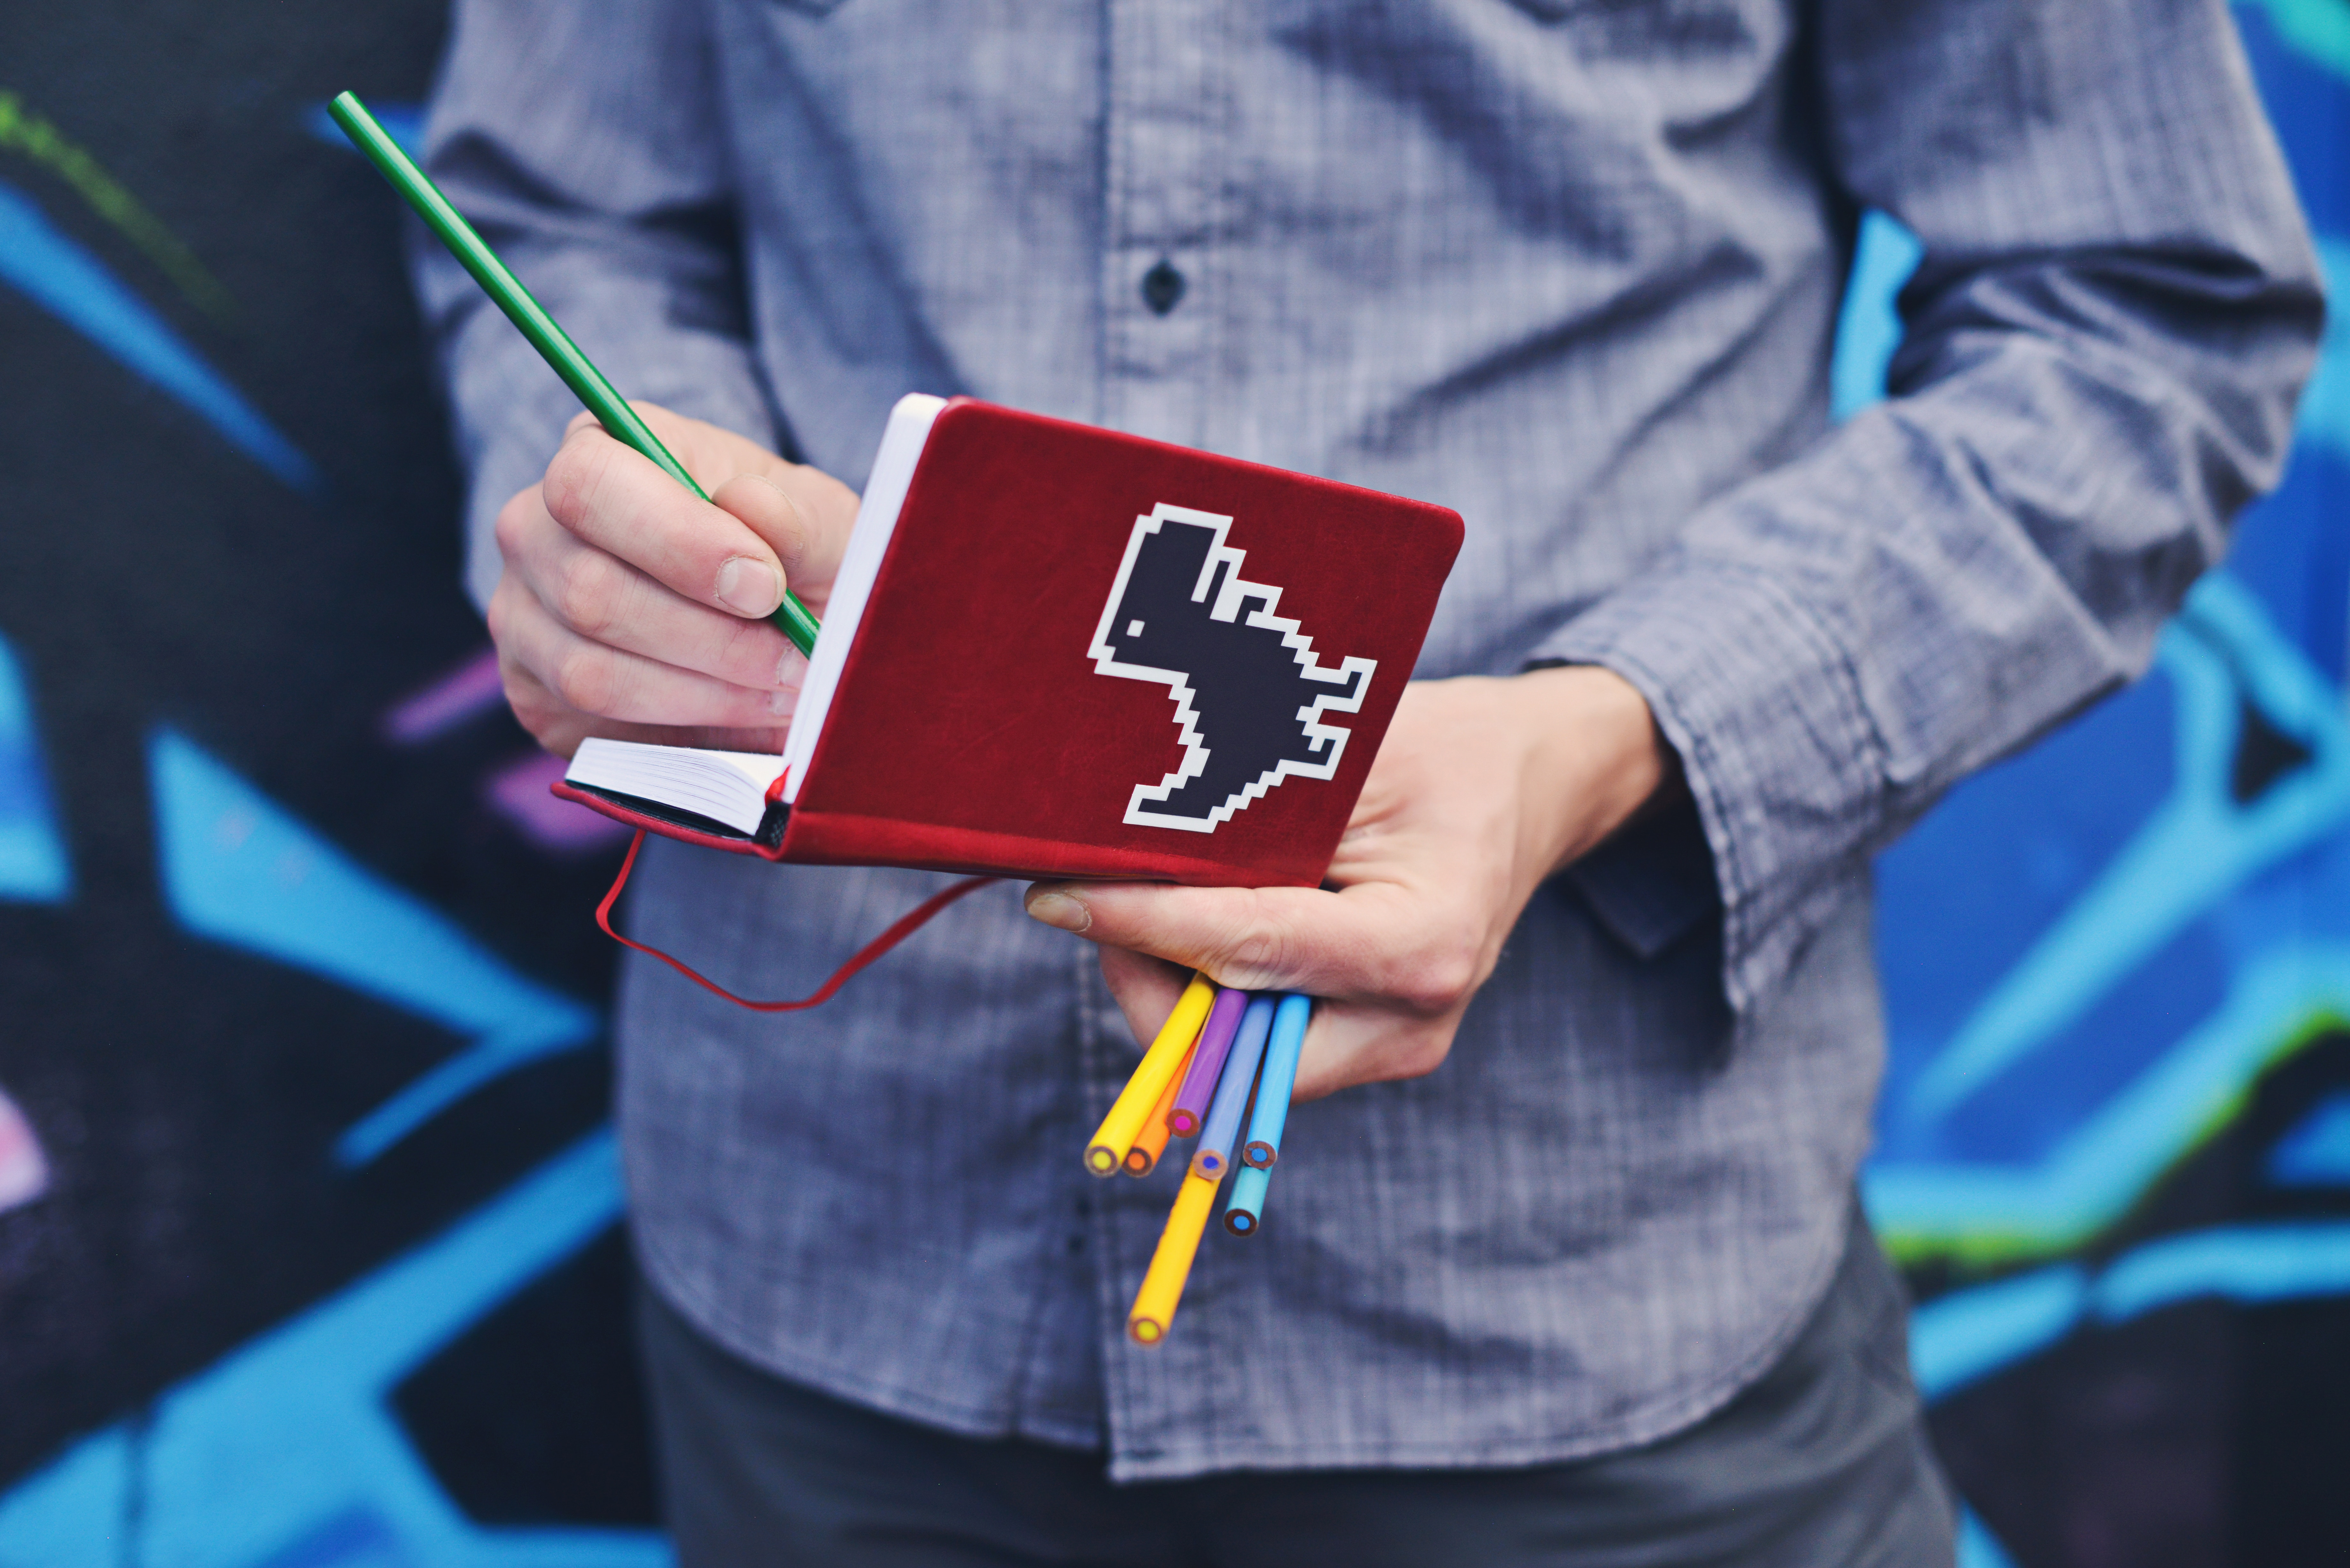 take notes freelance networking tips